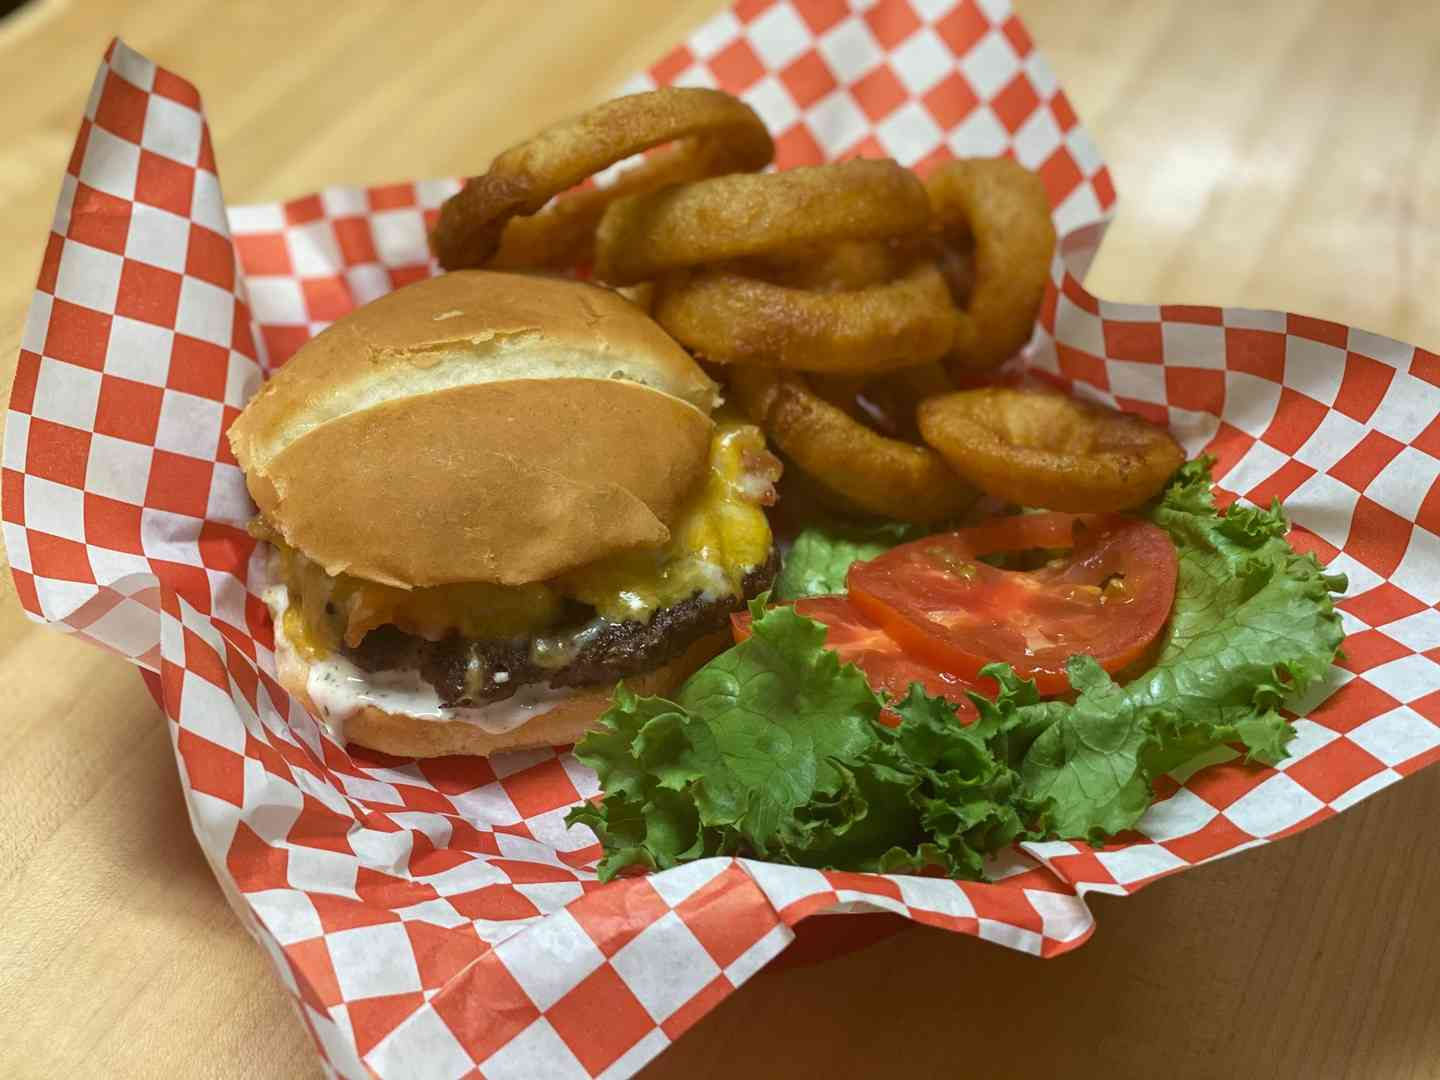 Ranch Burger with Beer Battered Onion Rings